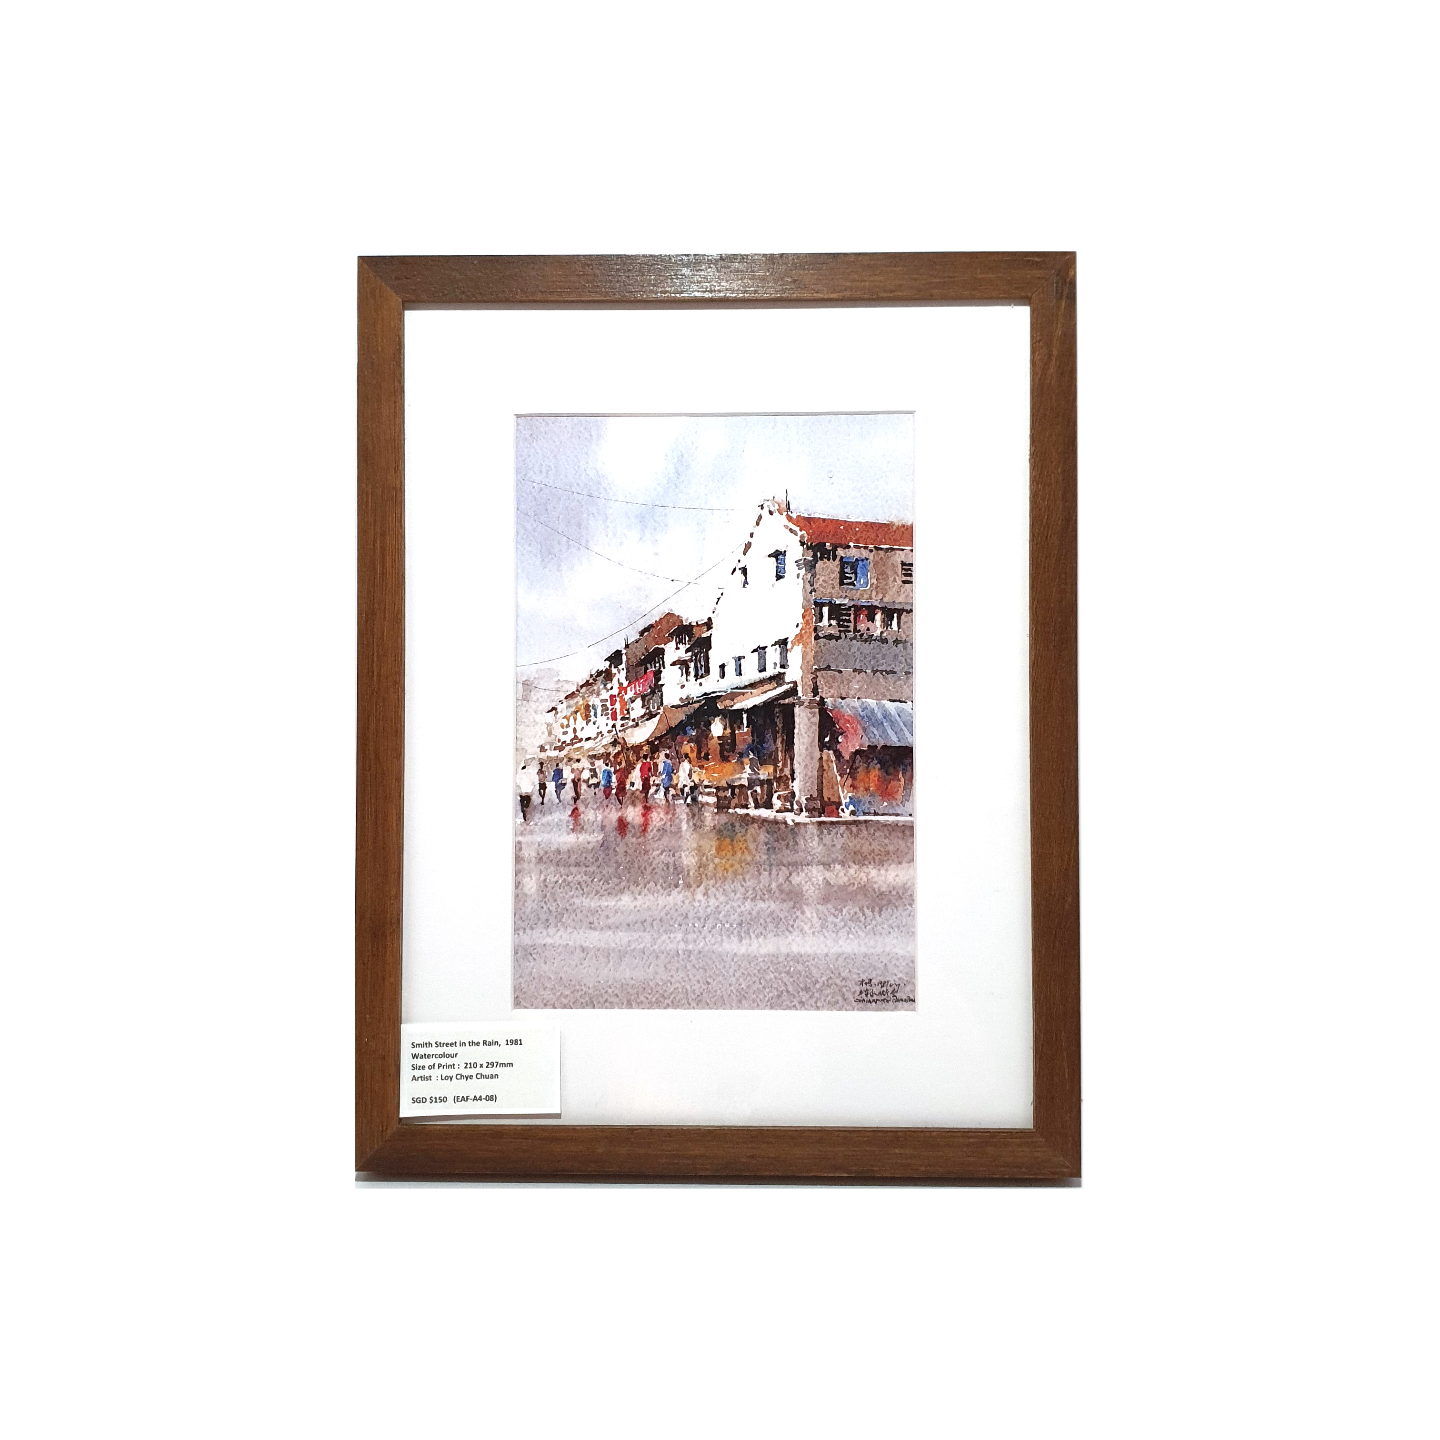 Heritage Water Colour Painting  Smith Street in the Rain by Loy Chye Chuan